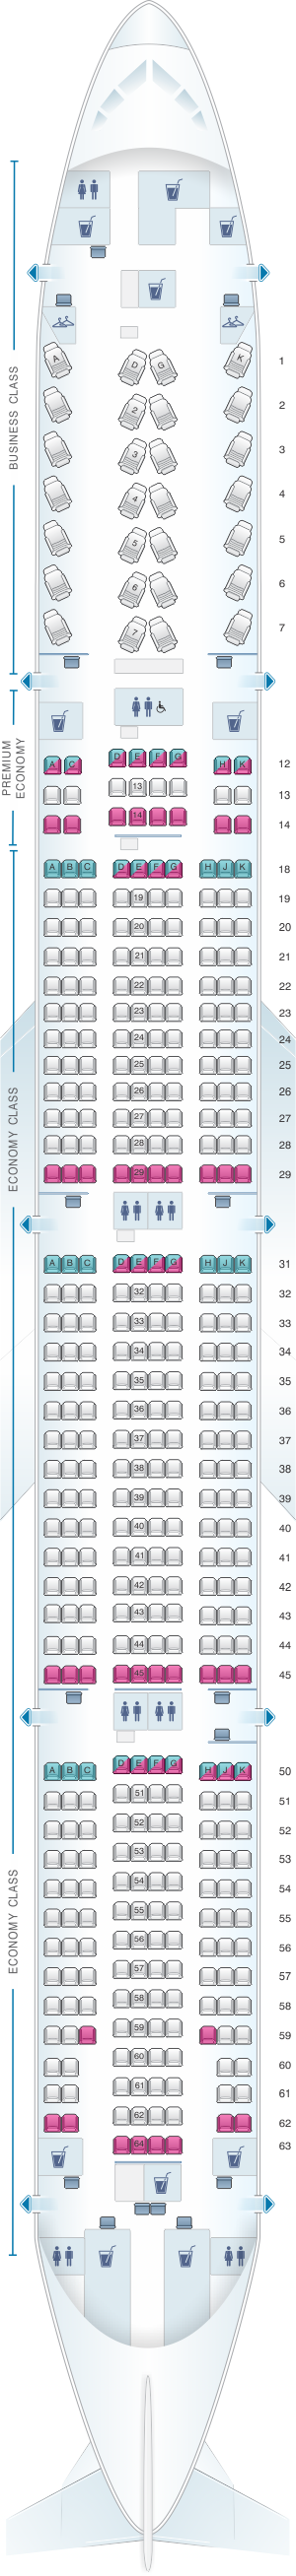 Seat map for Air Canada Boeing B777 300ER (77W) International Layout 2